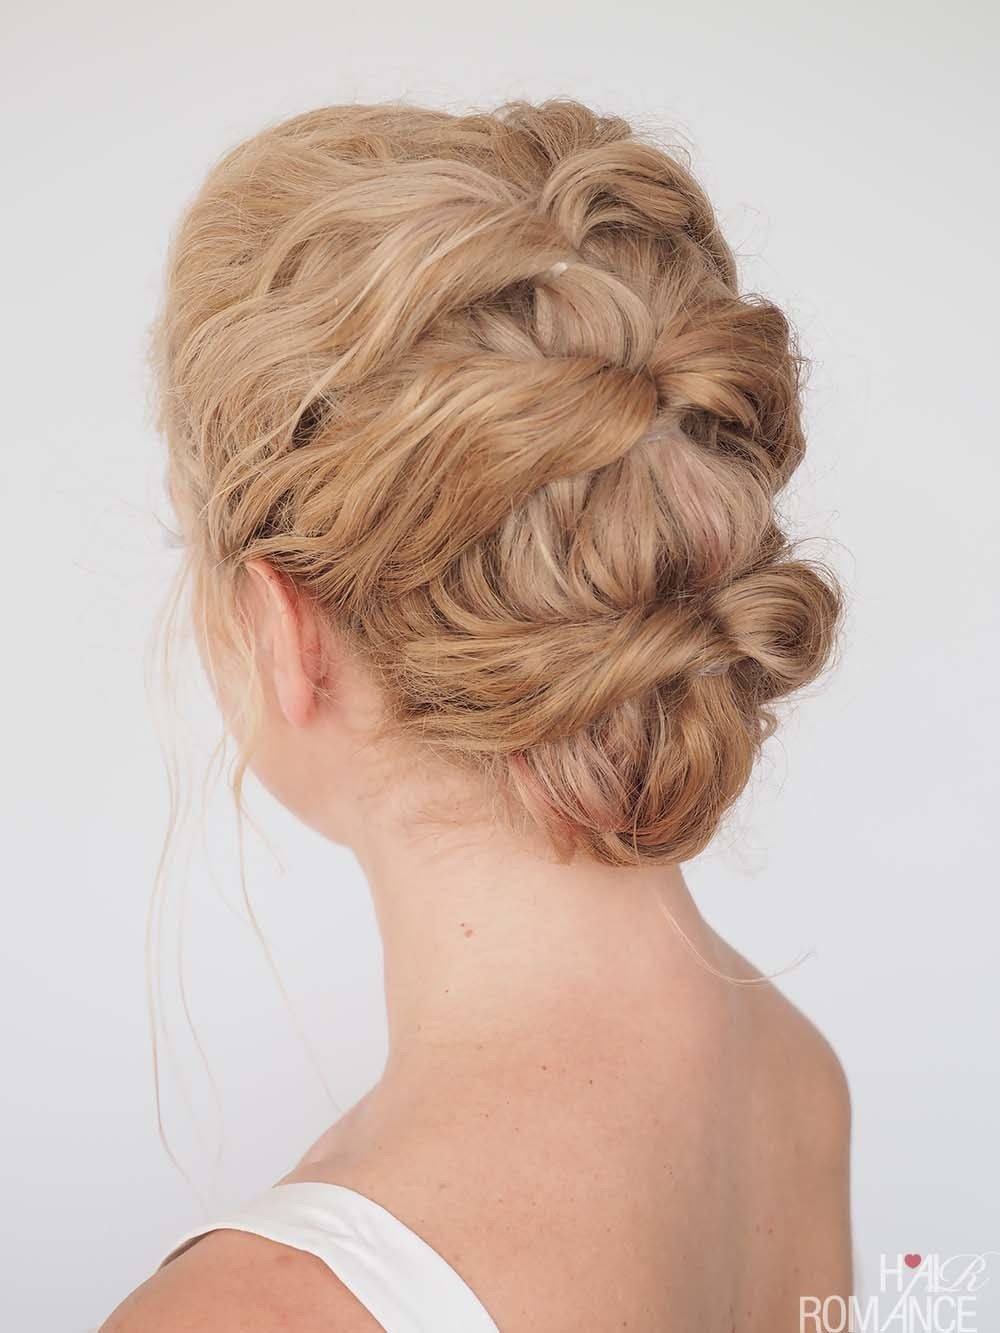 The Best Quick And Easy Twist Hairstyle Tutorial – Get Great Hair Pictures